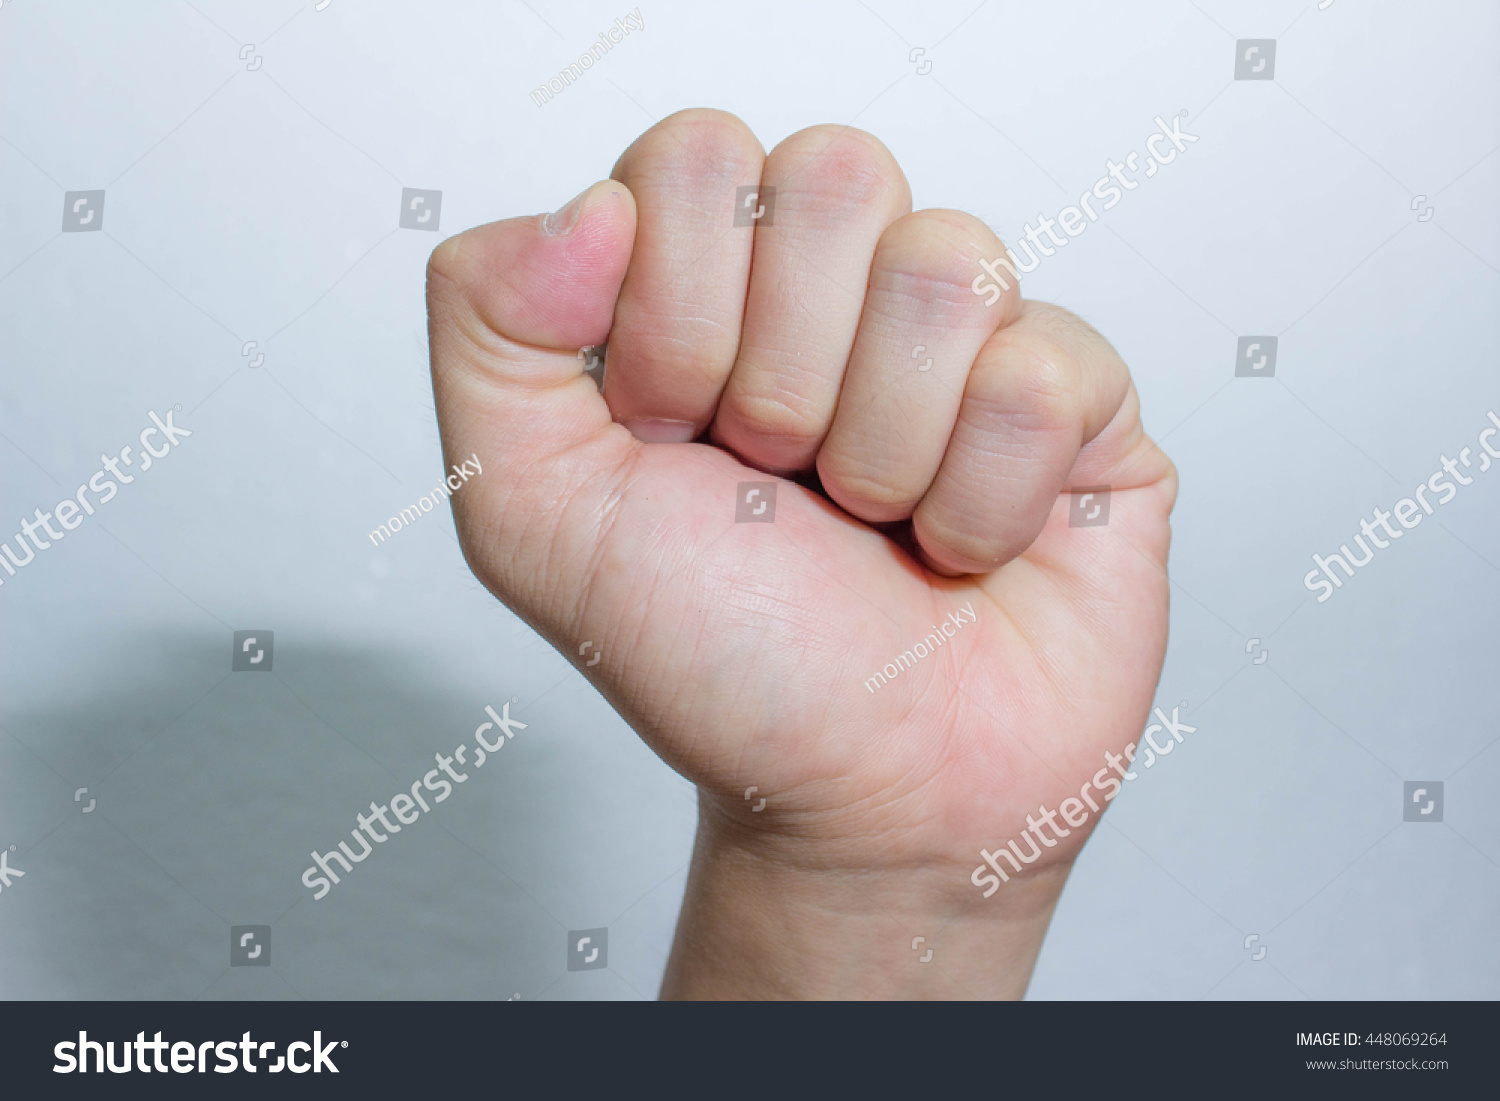 Royalty free hand hand for meaning symbol of 448069264 hand hand for meaning symbol of hands 448069264 buycottarizona Choice Image